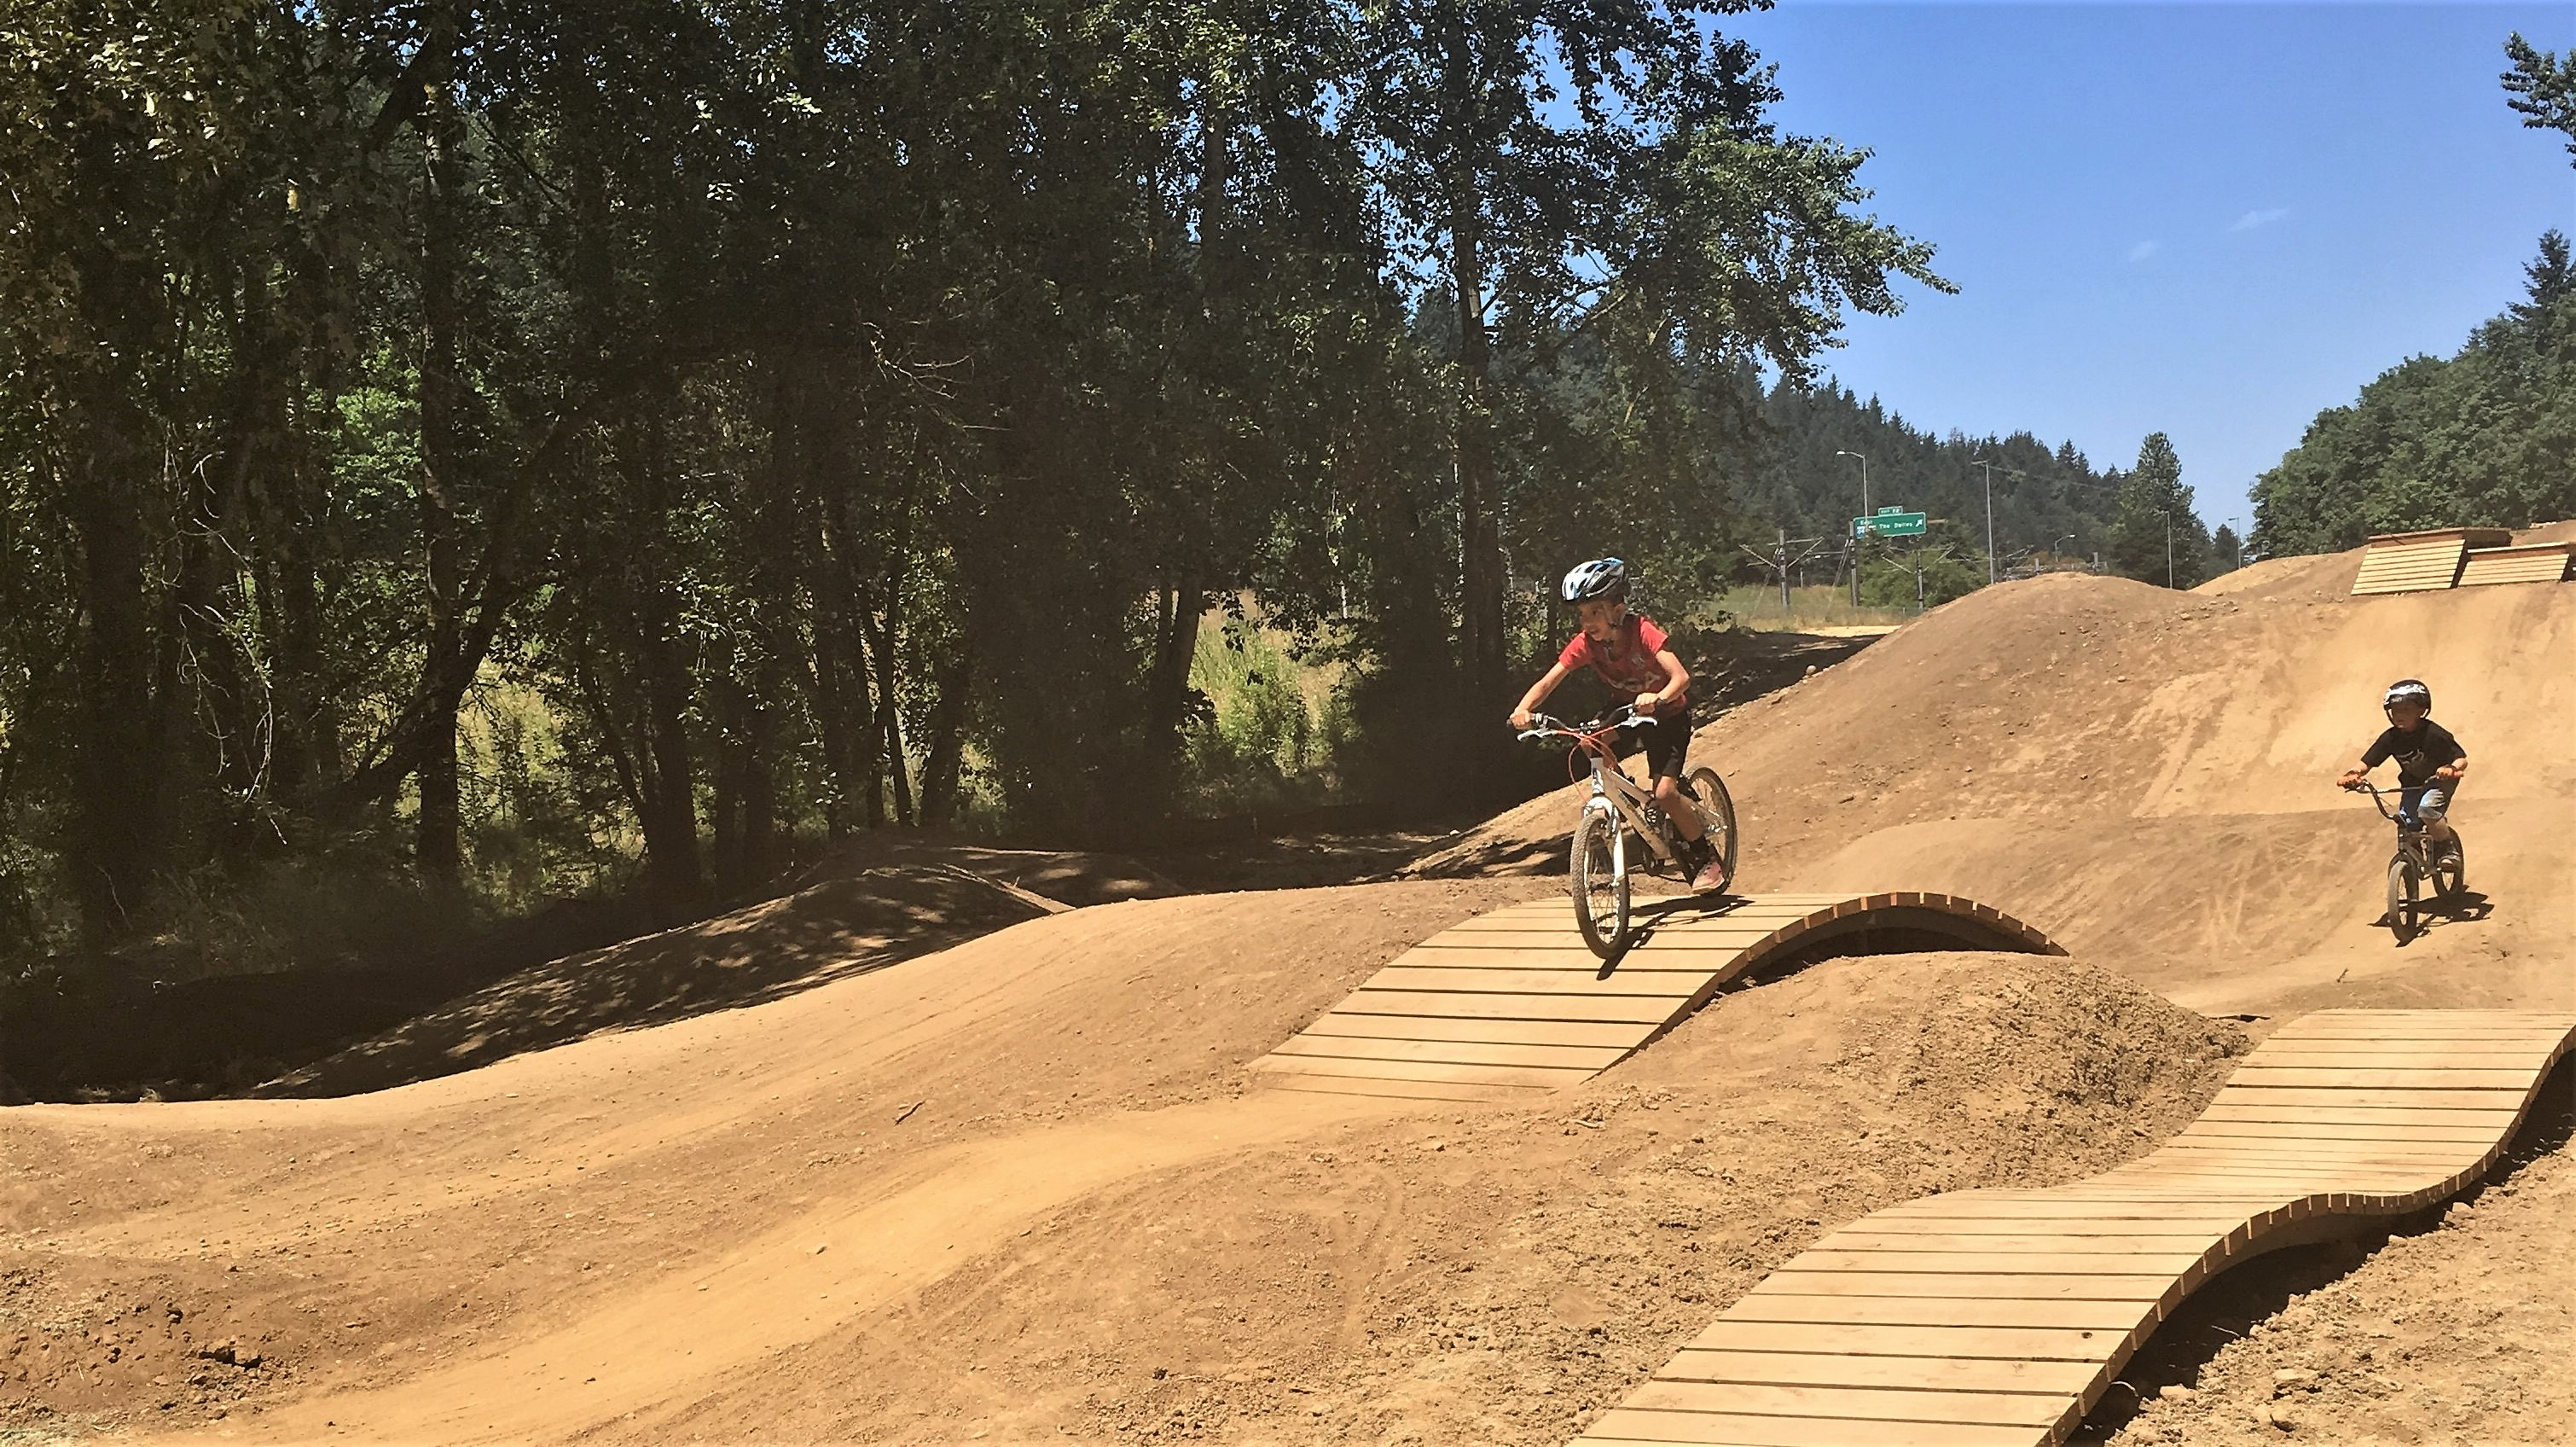 There S An Awesome New Bike Park In Portland And It S As